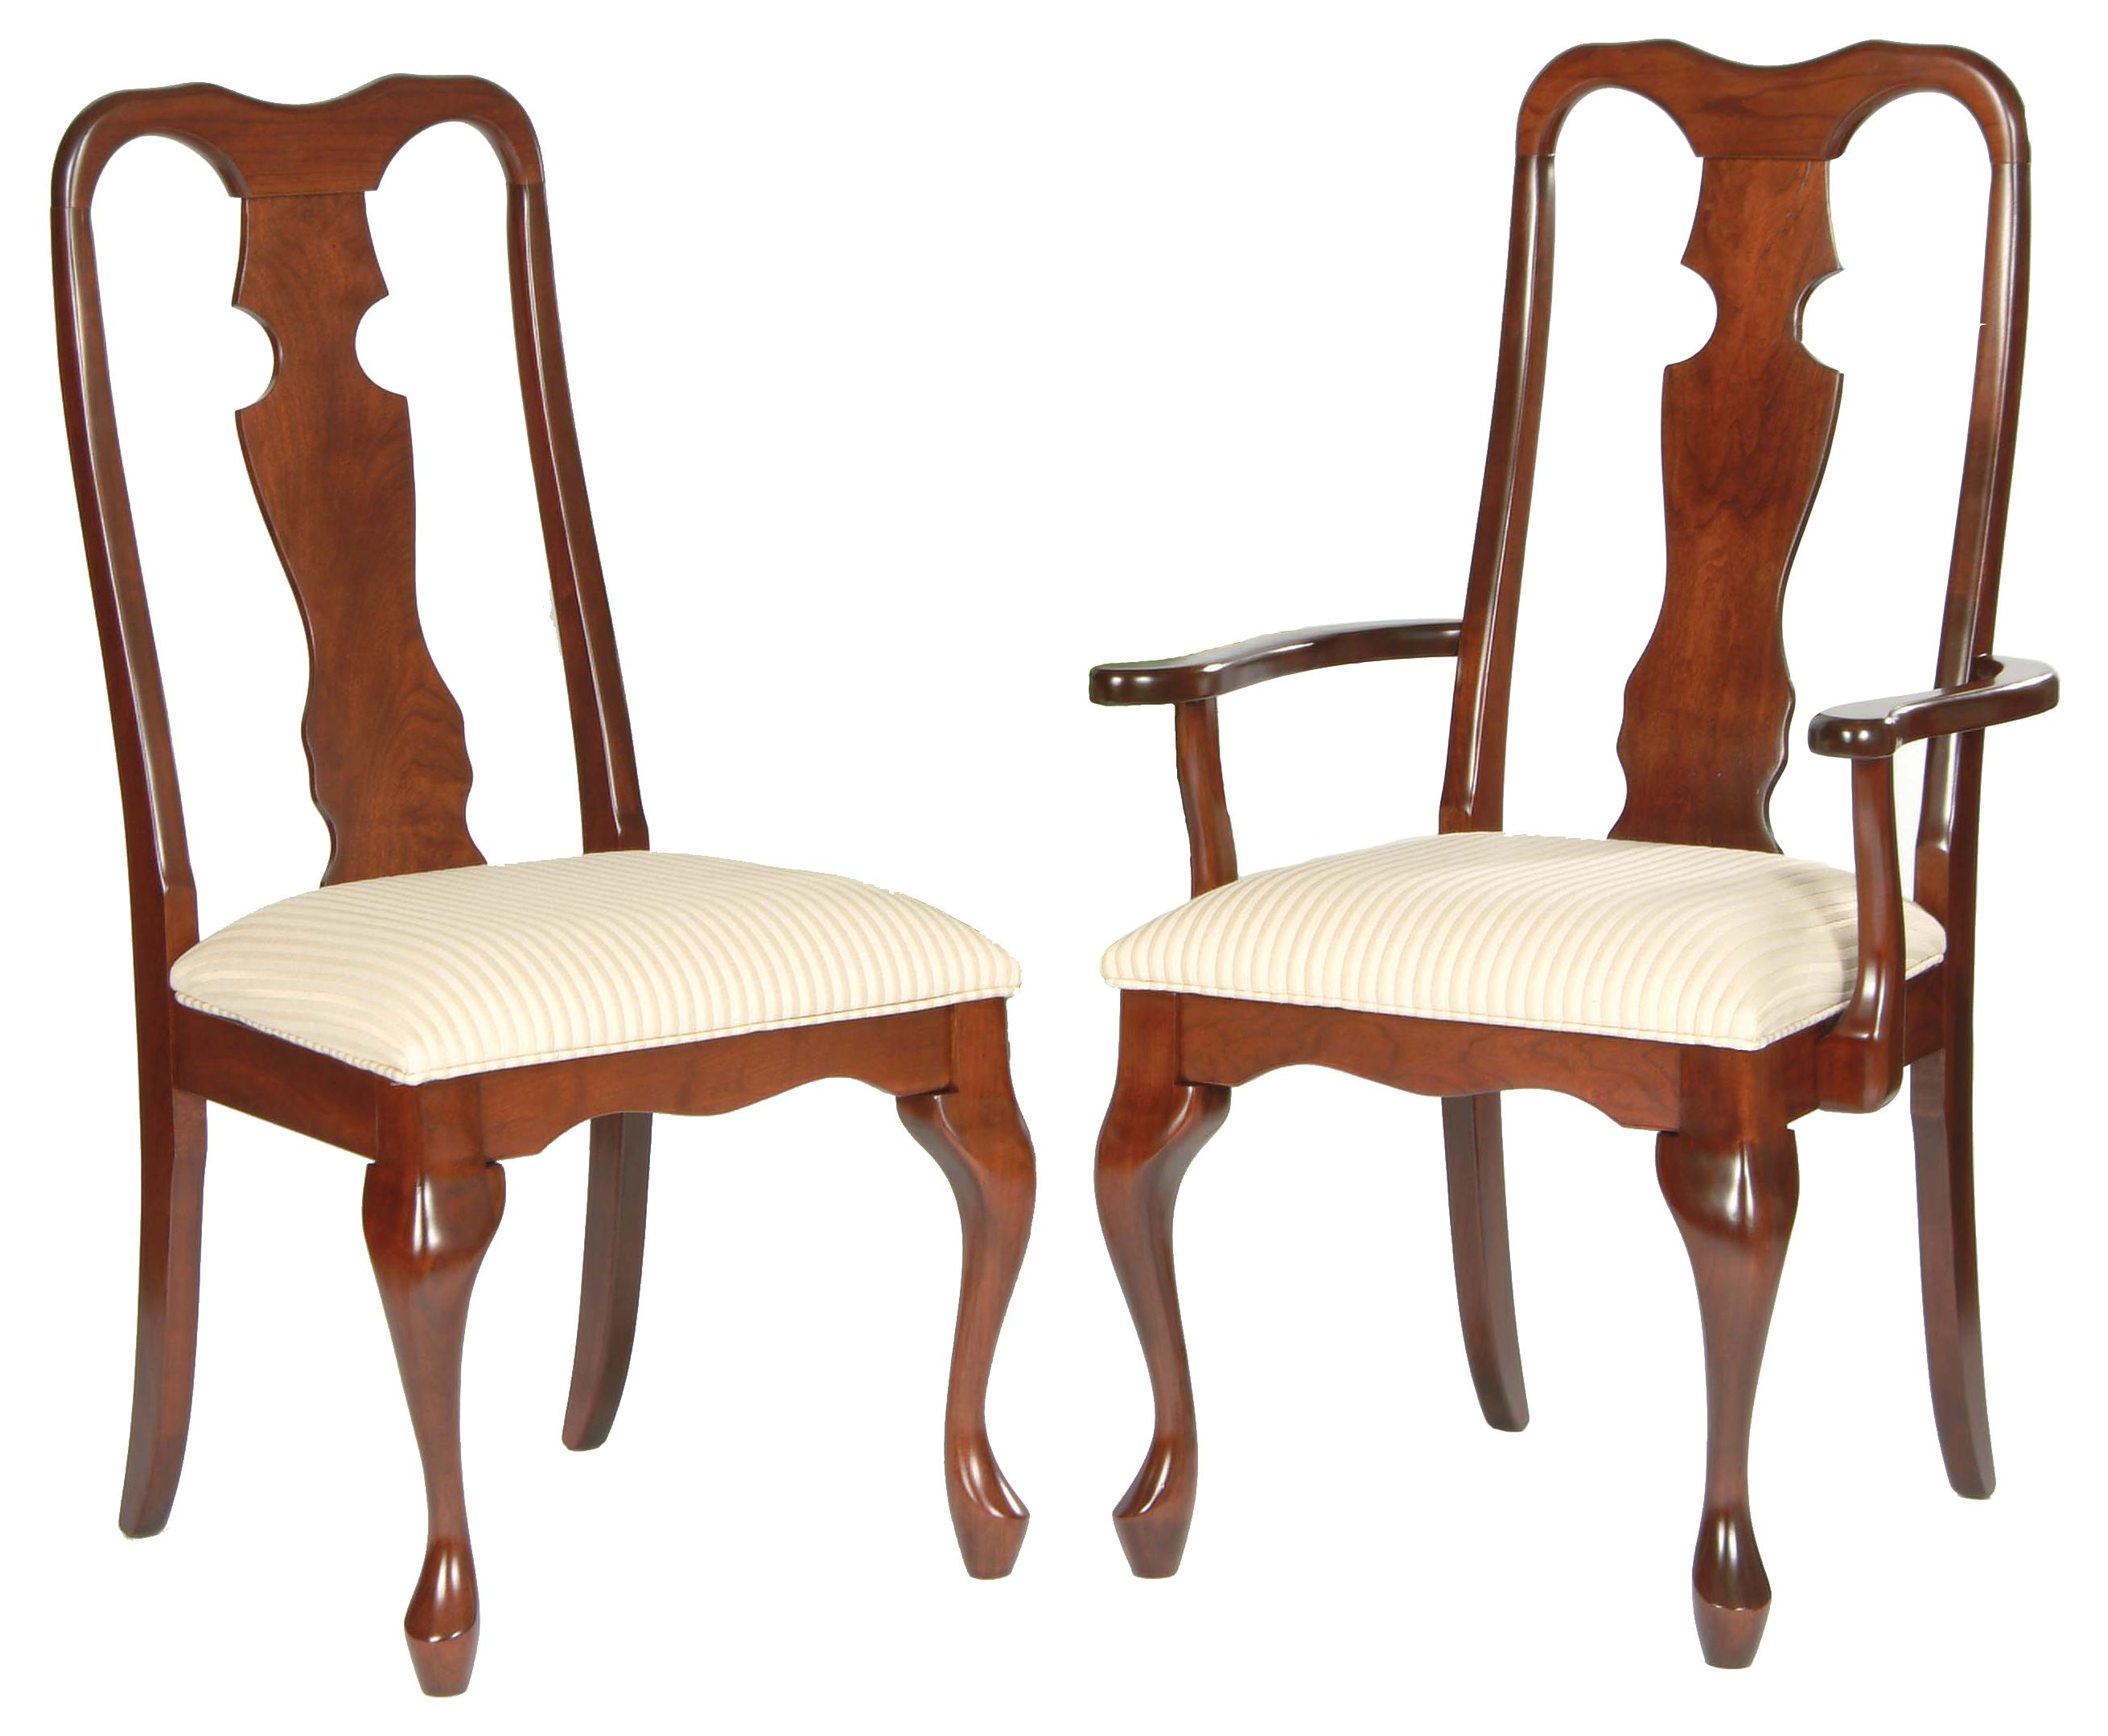 Queen Anne chairs with solid splat and thin cabriole leg ...